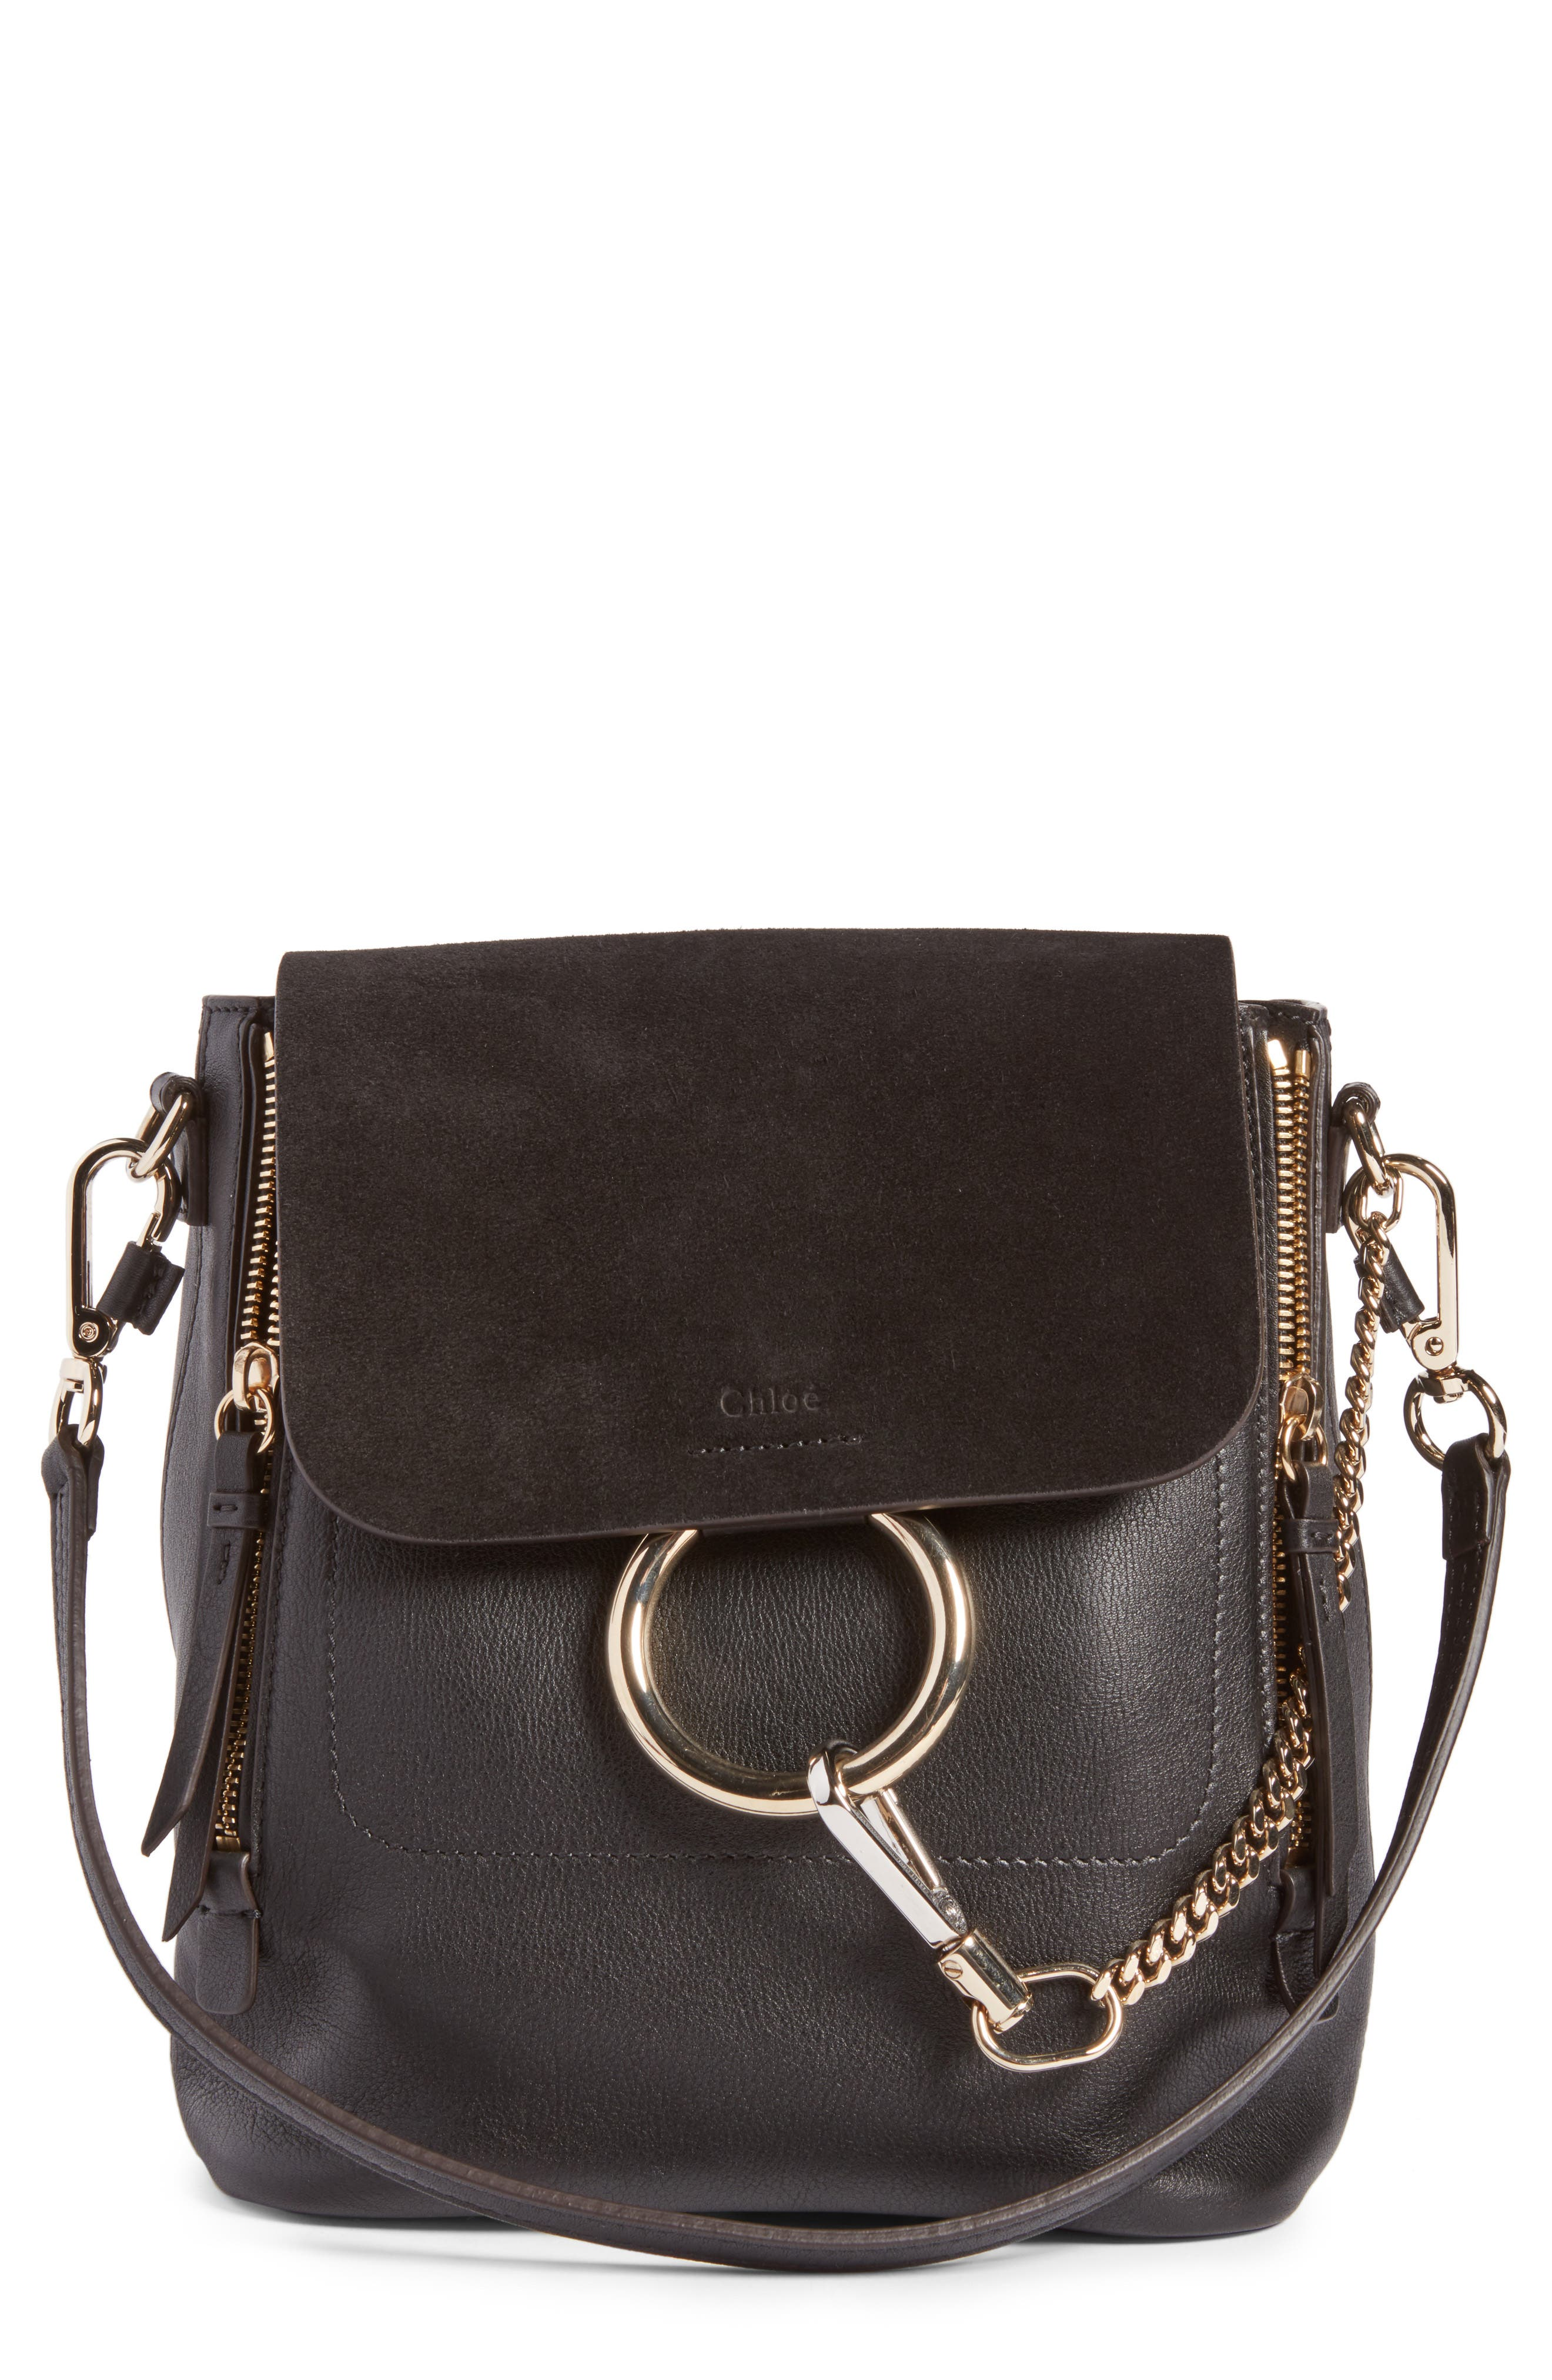 Chloe Small Faye Suede Leather Backpack